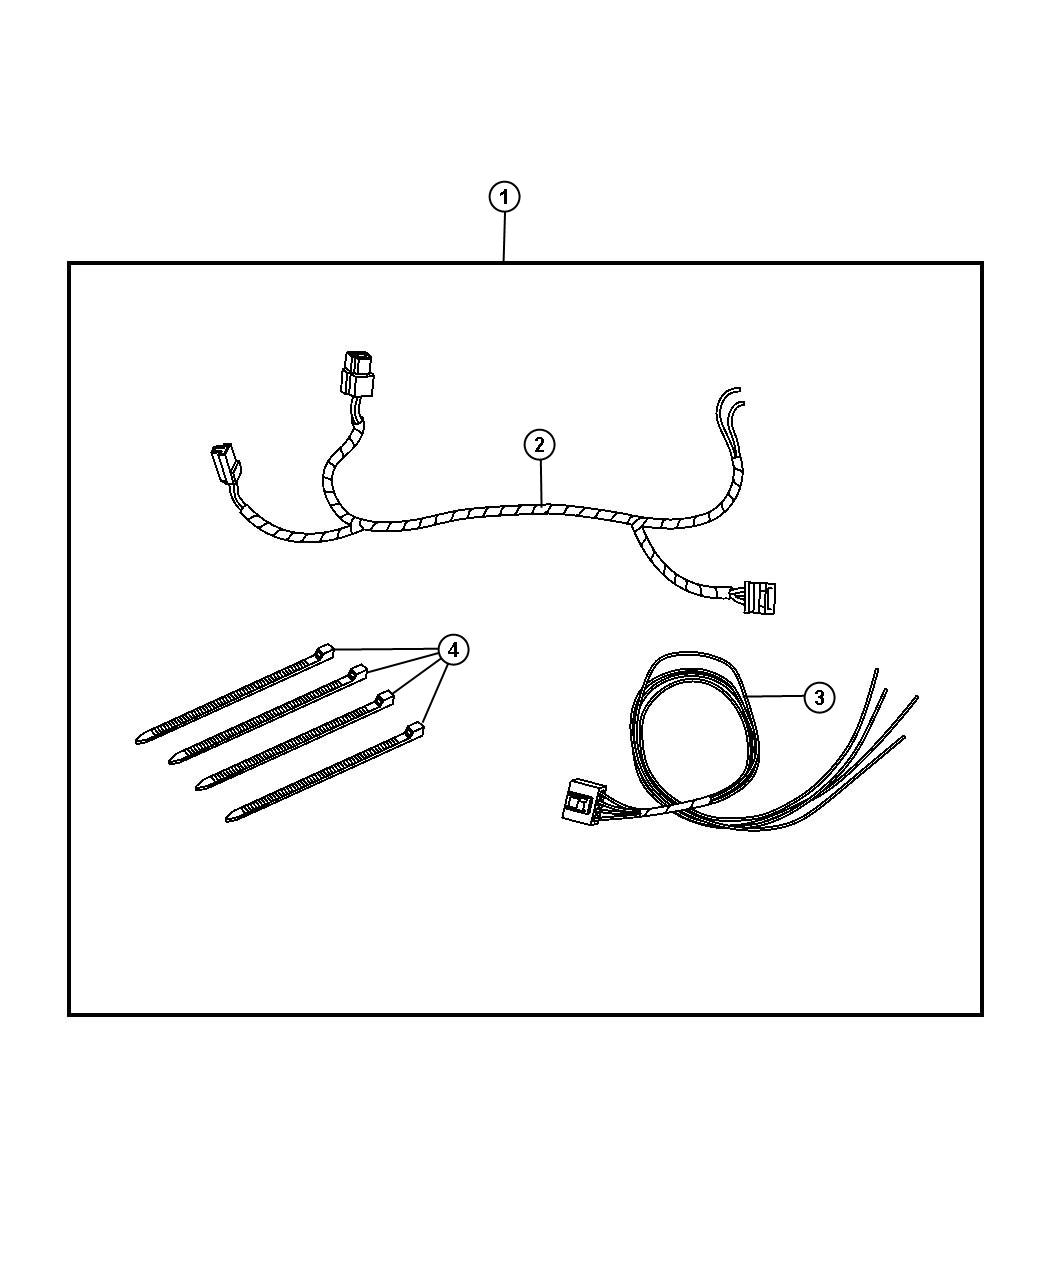 Wiring Kit - Electric Brake. Diagram